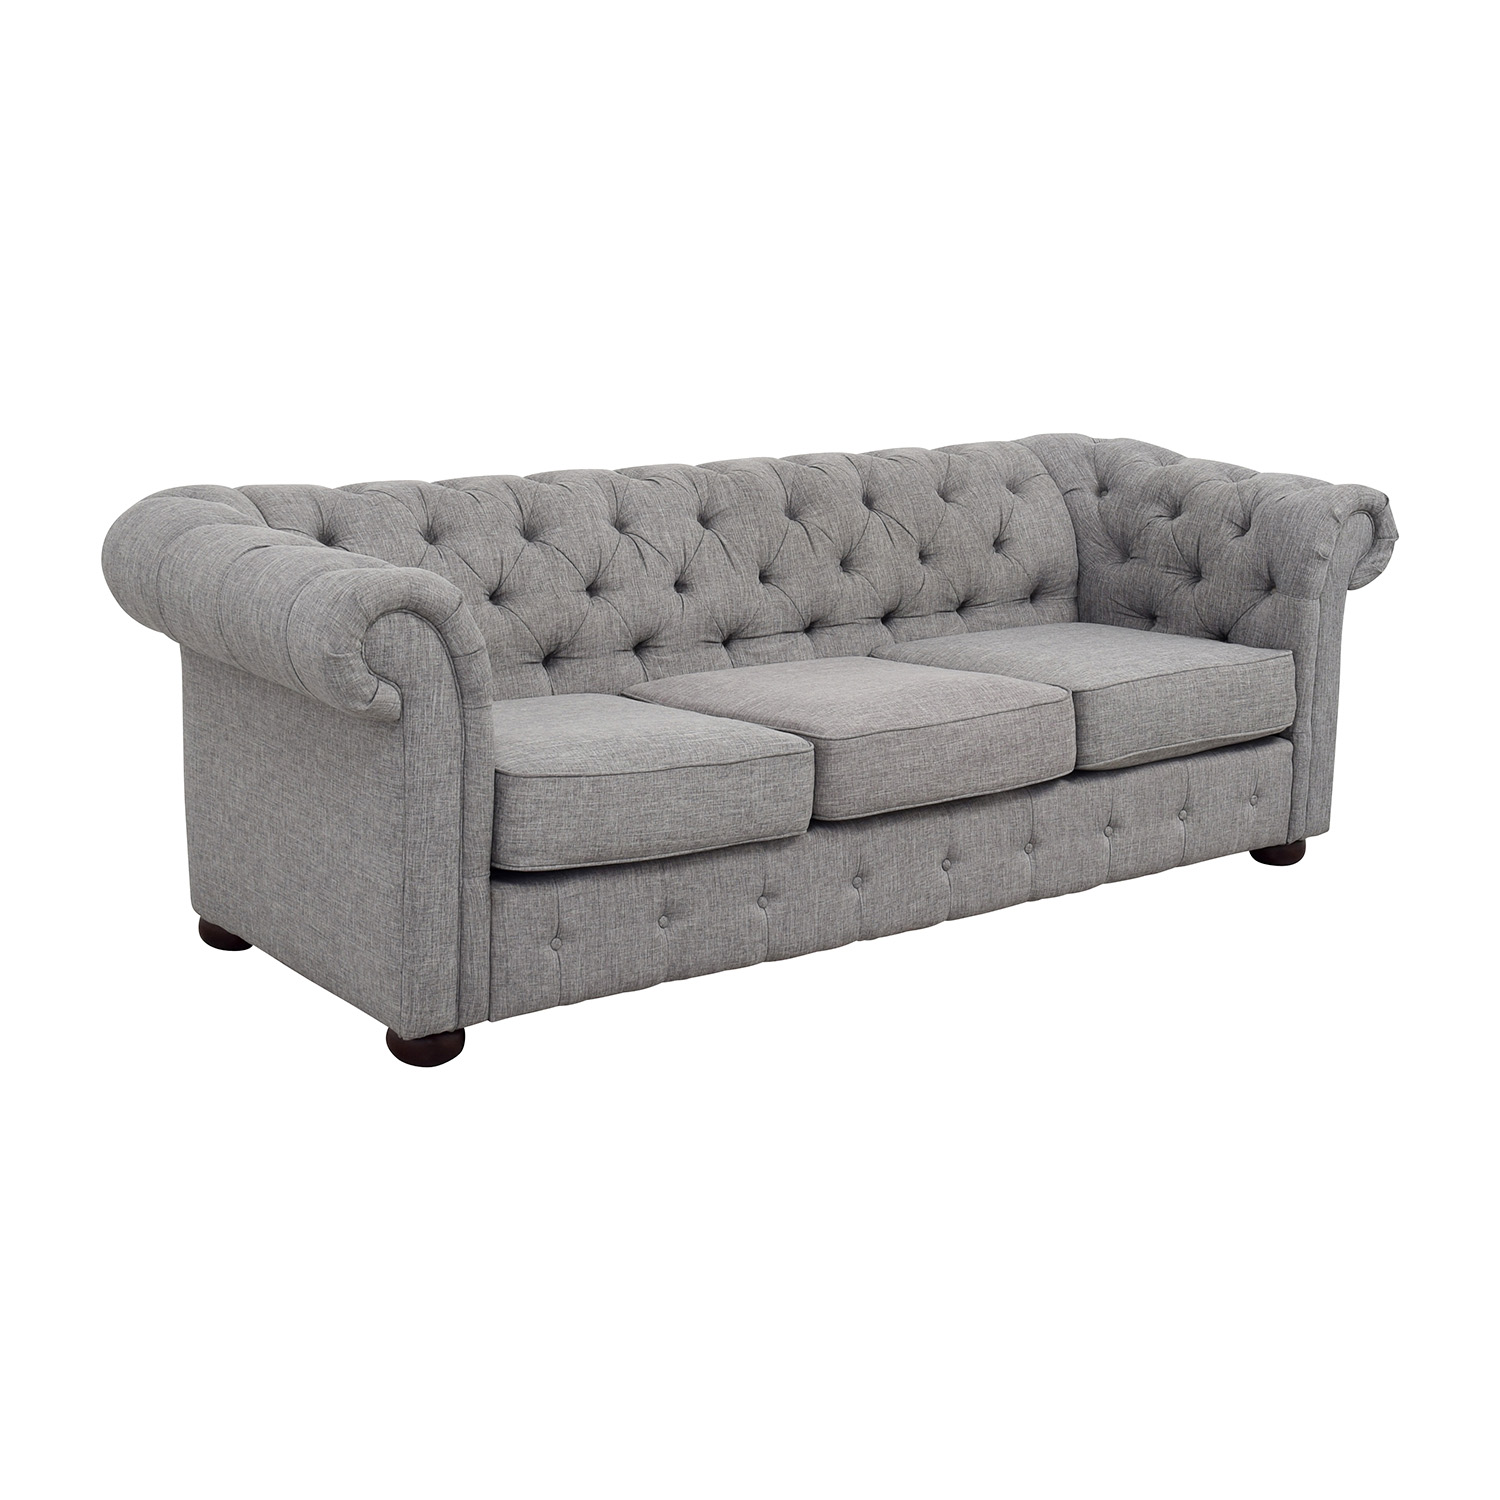 House of Hampton House of Hampton Augustine Tufted Chesterfield Sofa used